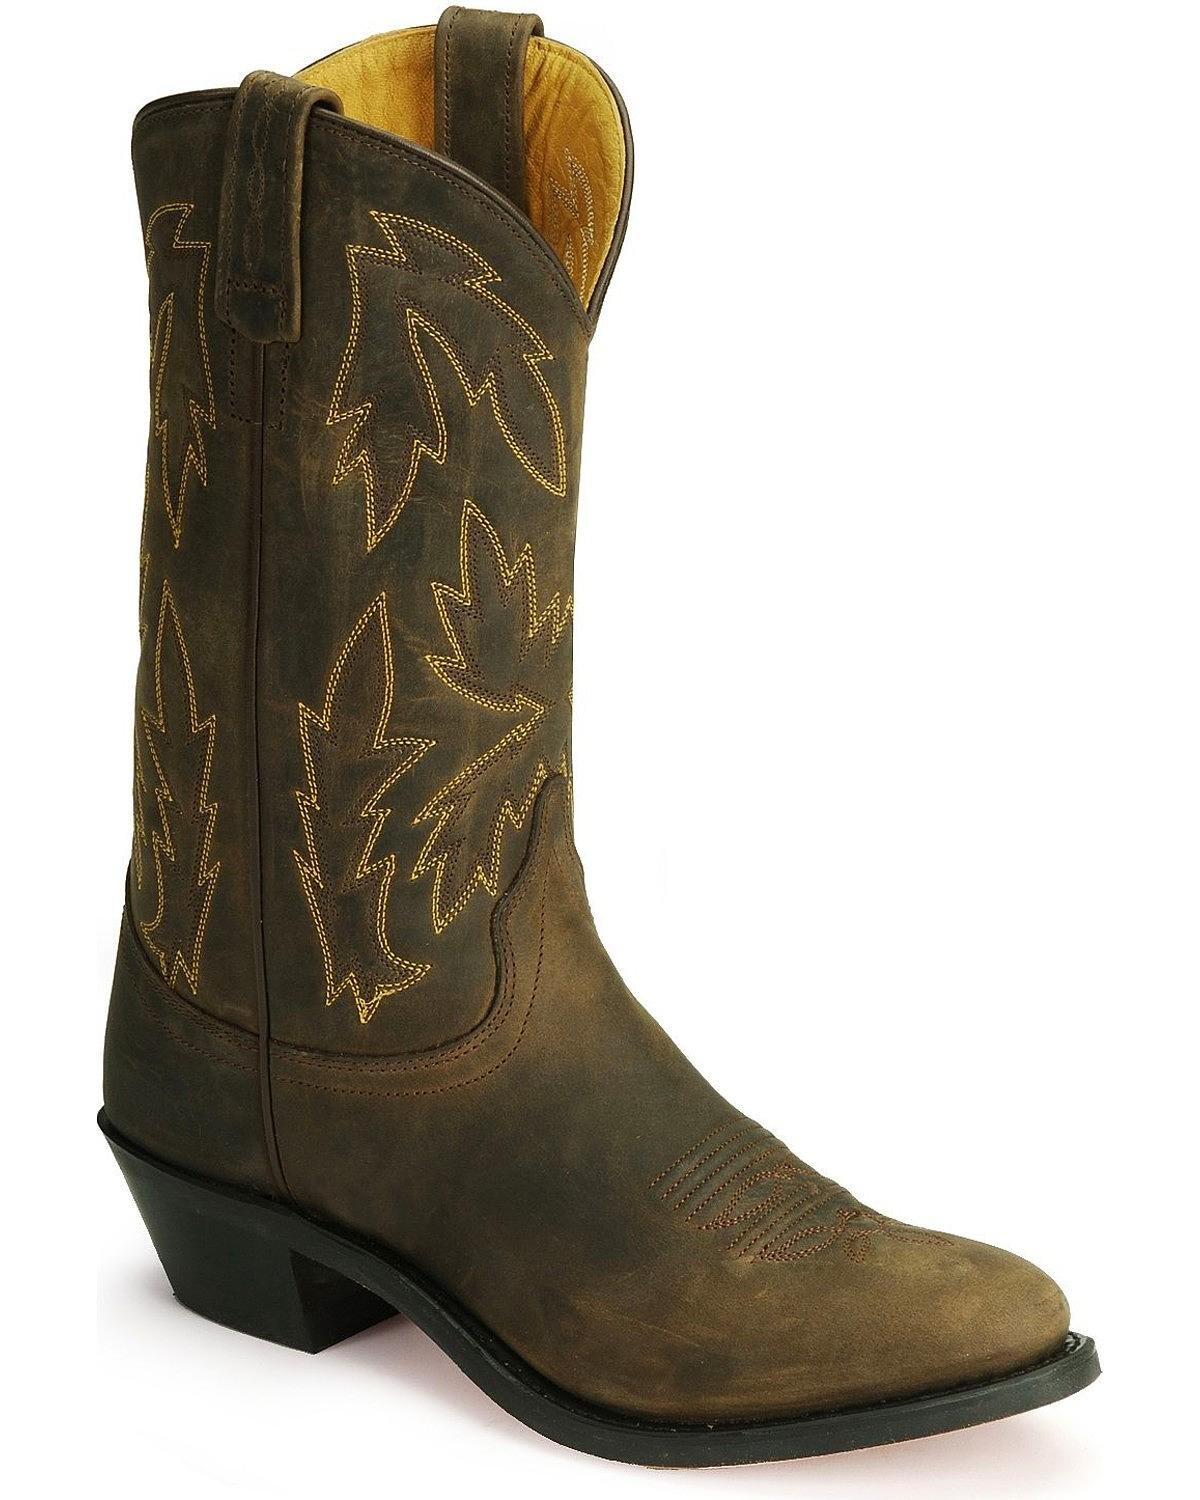 Old West Women's Polanil Western Cowboy Boot Round Toe - Ow2034l B005PP3G74 8 M US|Apache Tan